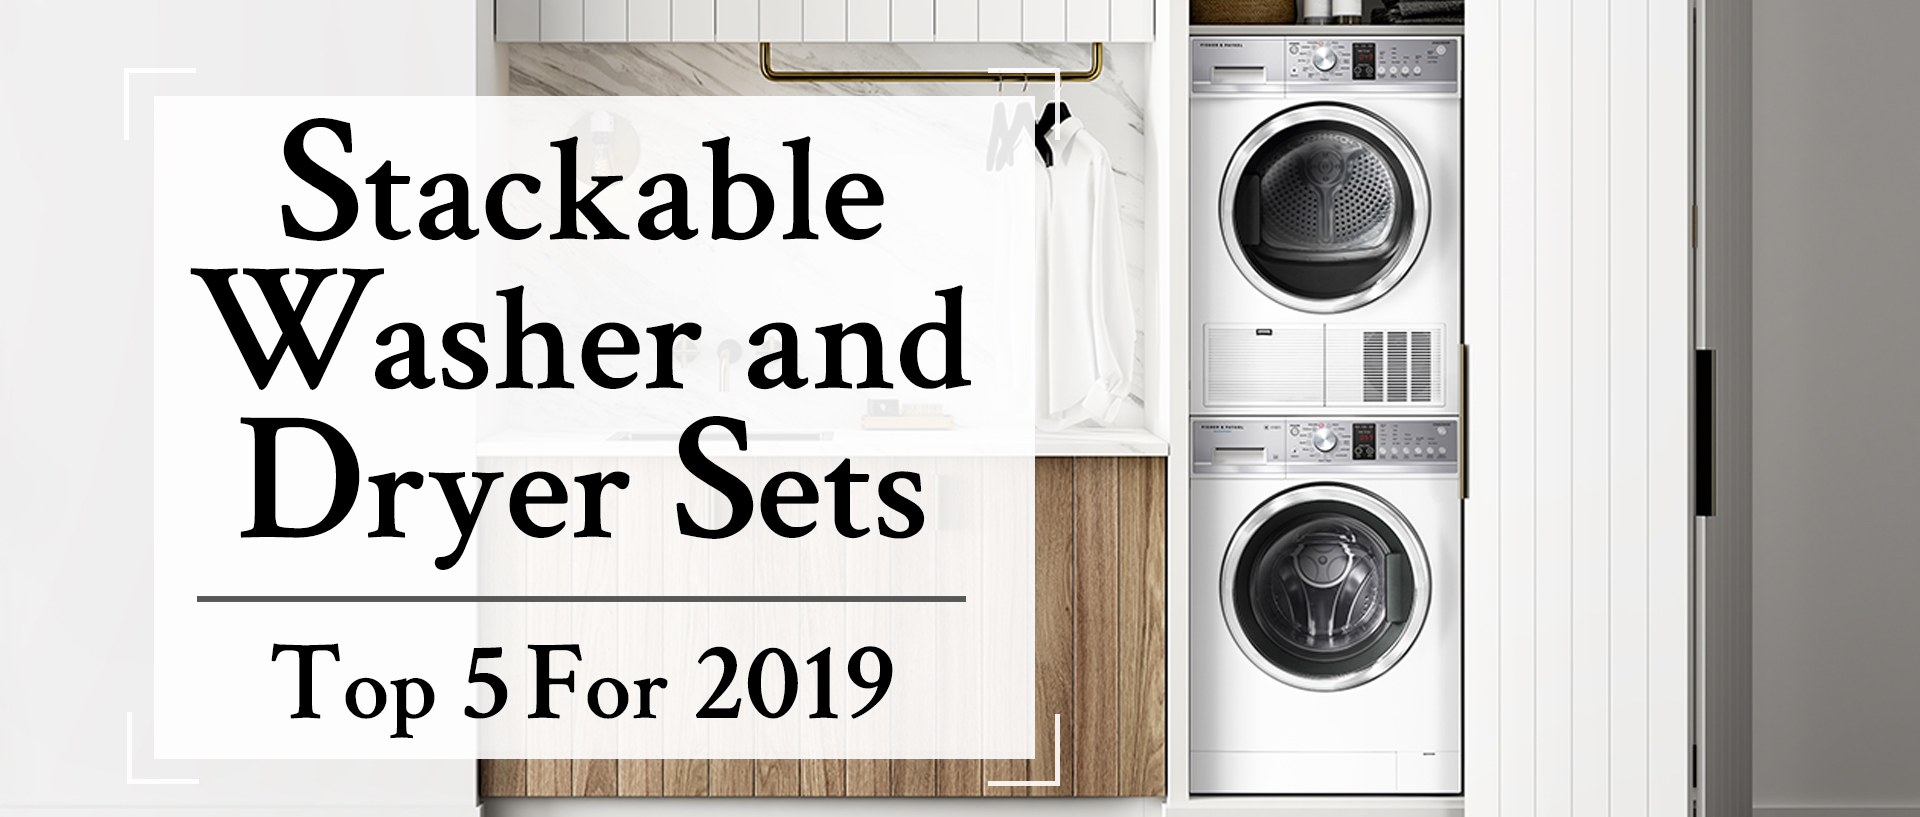 Stackable Washer and Dryer Sets - Top 5 for 2019 | Appliances Connection